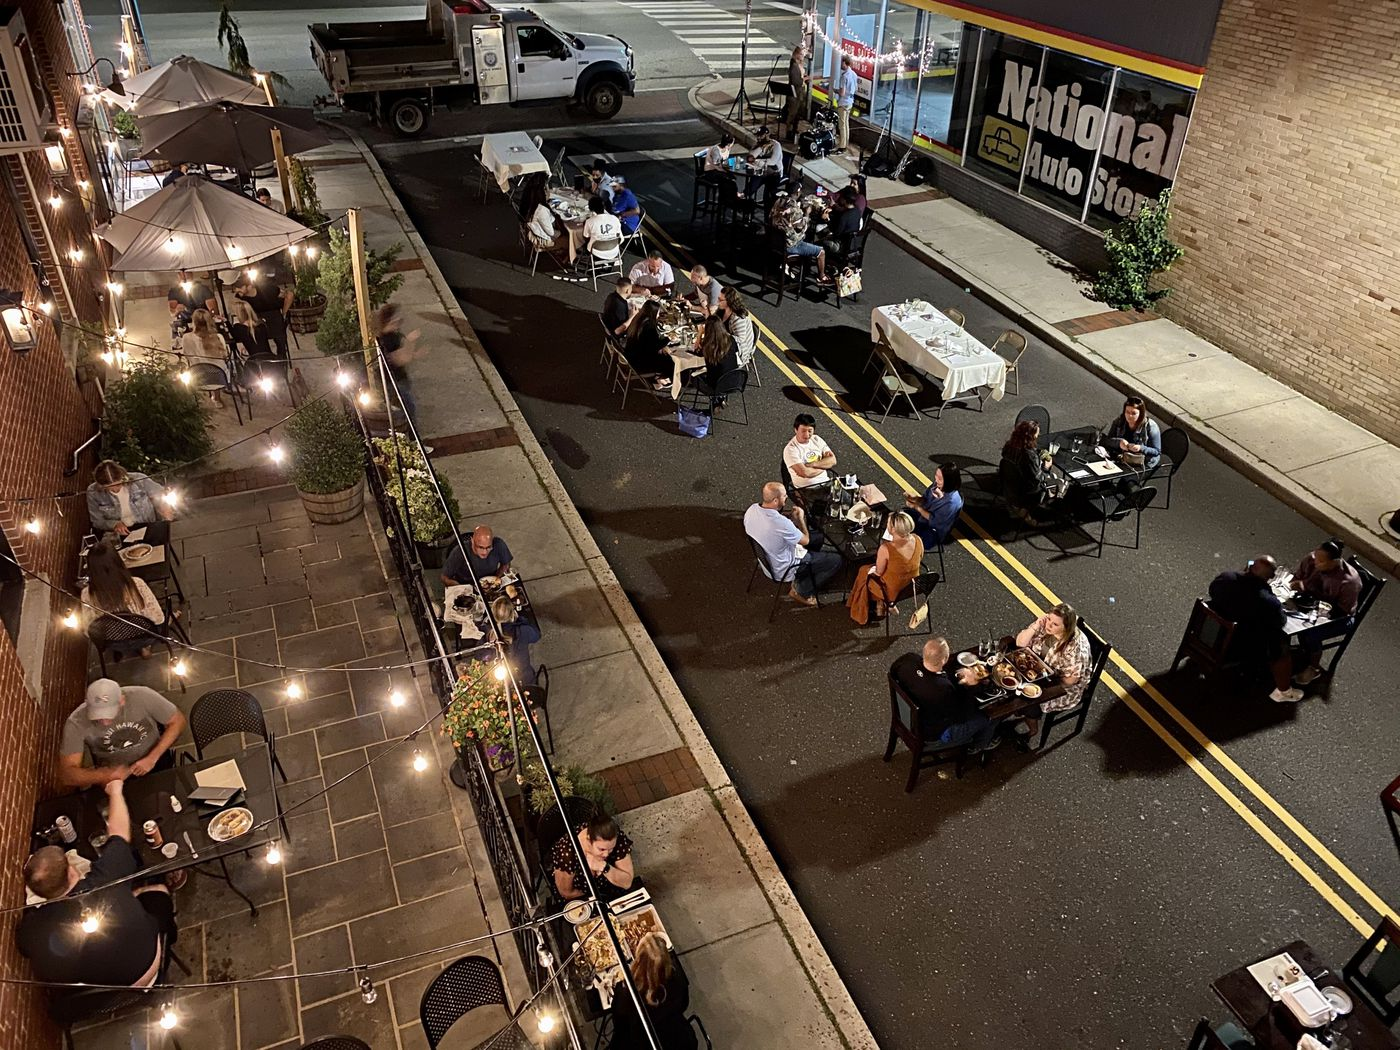 Diners fill seating on the patio and in Wood Street outside of Stove & Tap restaurant in Lansdale on Sept. 12, 2020. The photo was taken from the restaurant's second floor, now unused because of the pandemic.